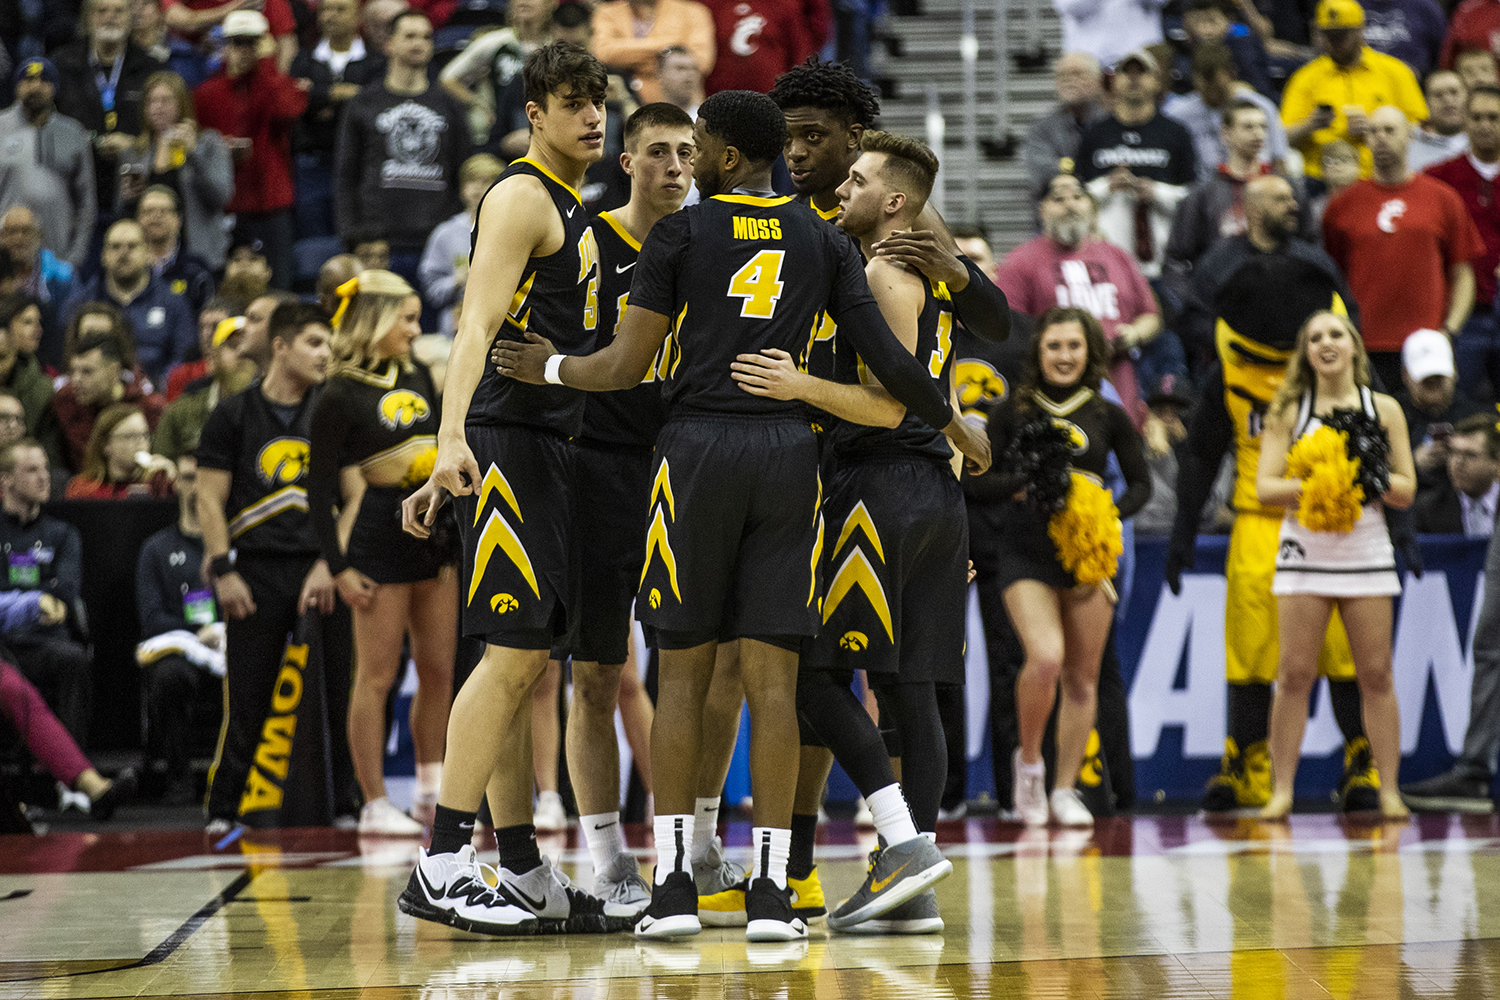 Iowa players come together before the NCAA game against Cincinnati at Nationwide Arena on Friday, March 22, 2019. The Hawkeyes defeated the Bearcats 79-72.